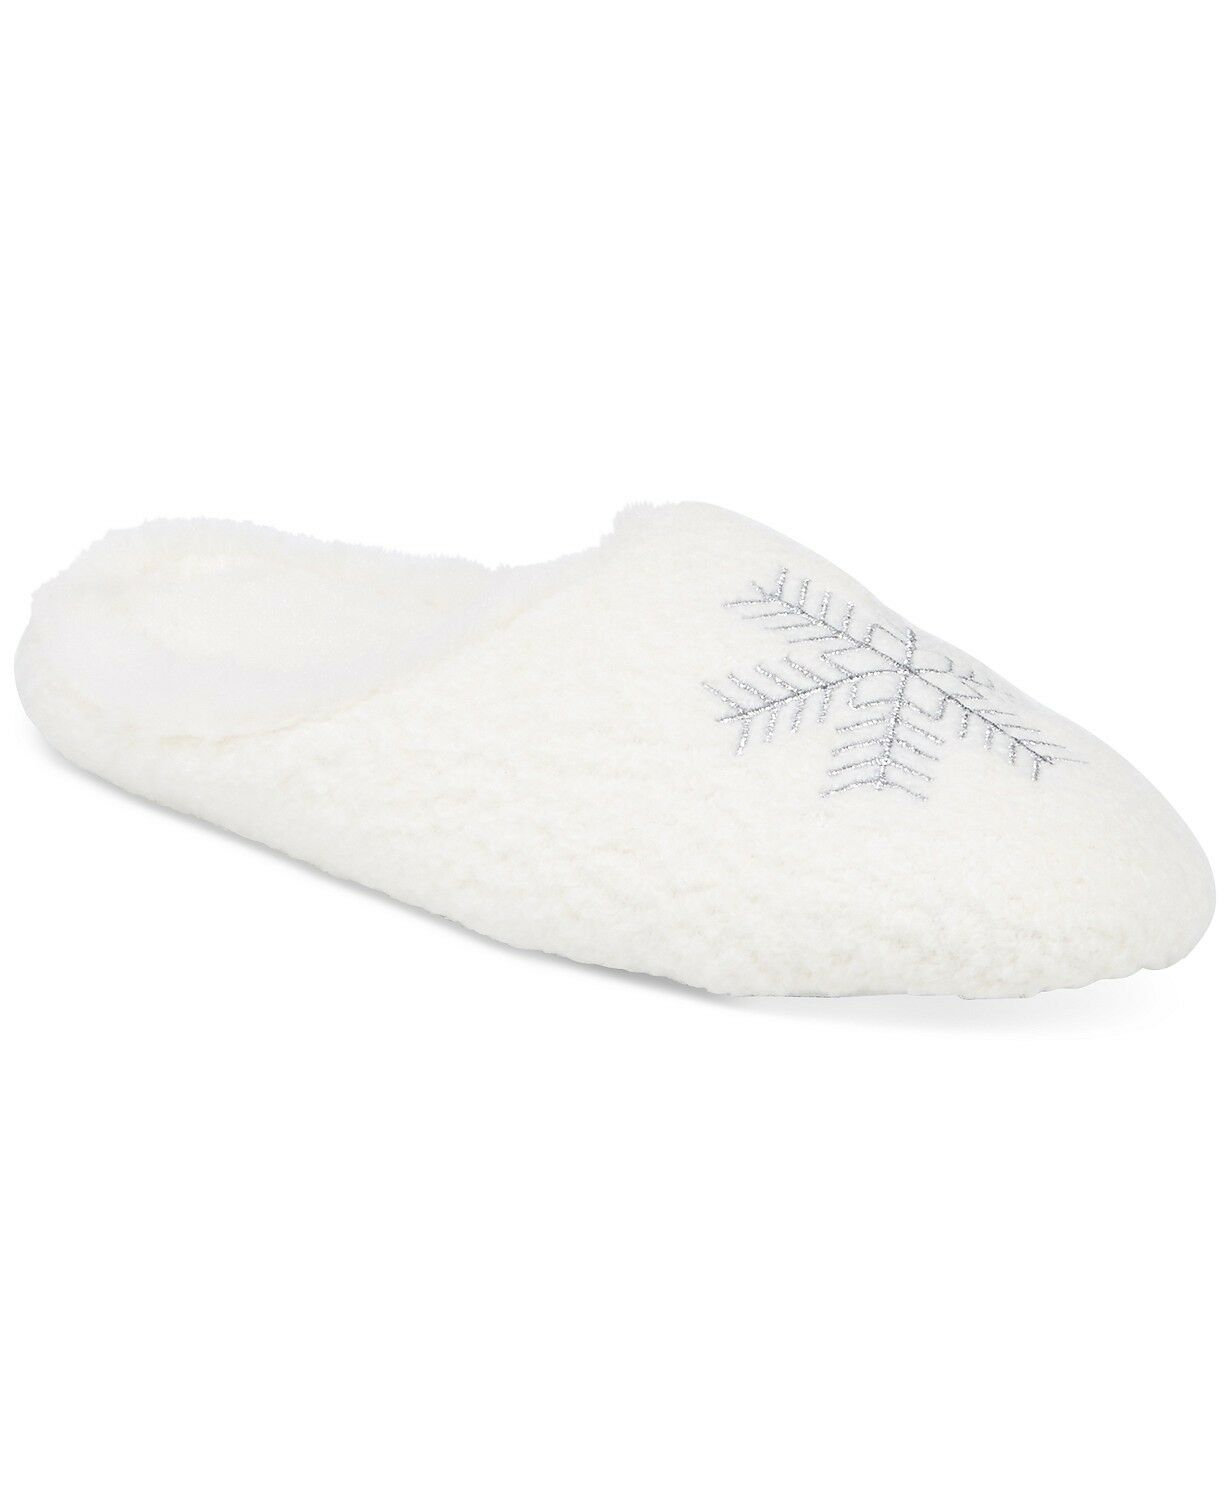 NWT Charter Club White Snowflake Clog Slippers Slip-On Shoes Indoor Outdoor M